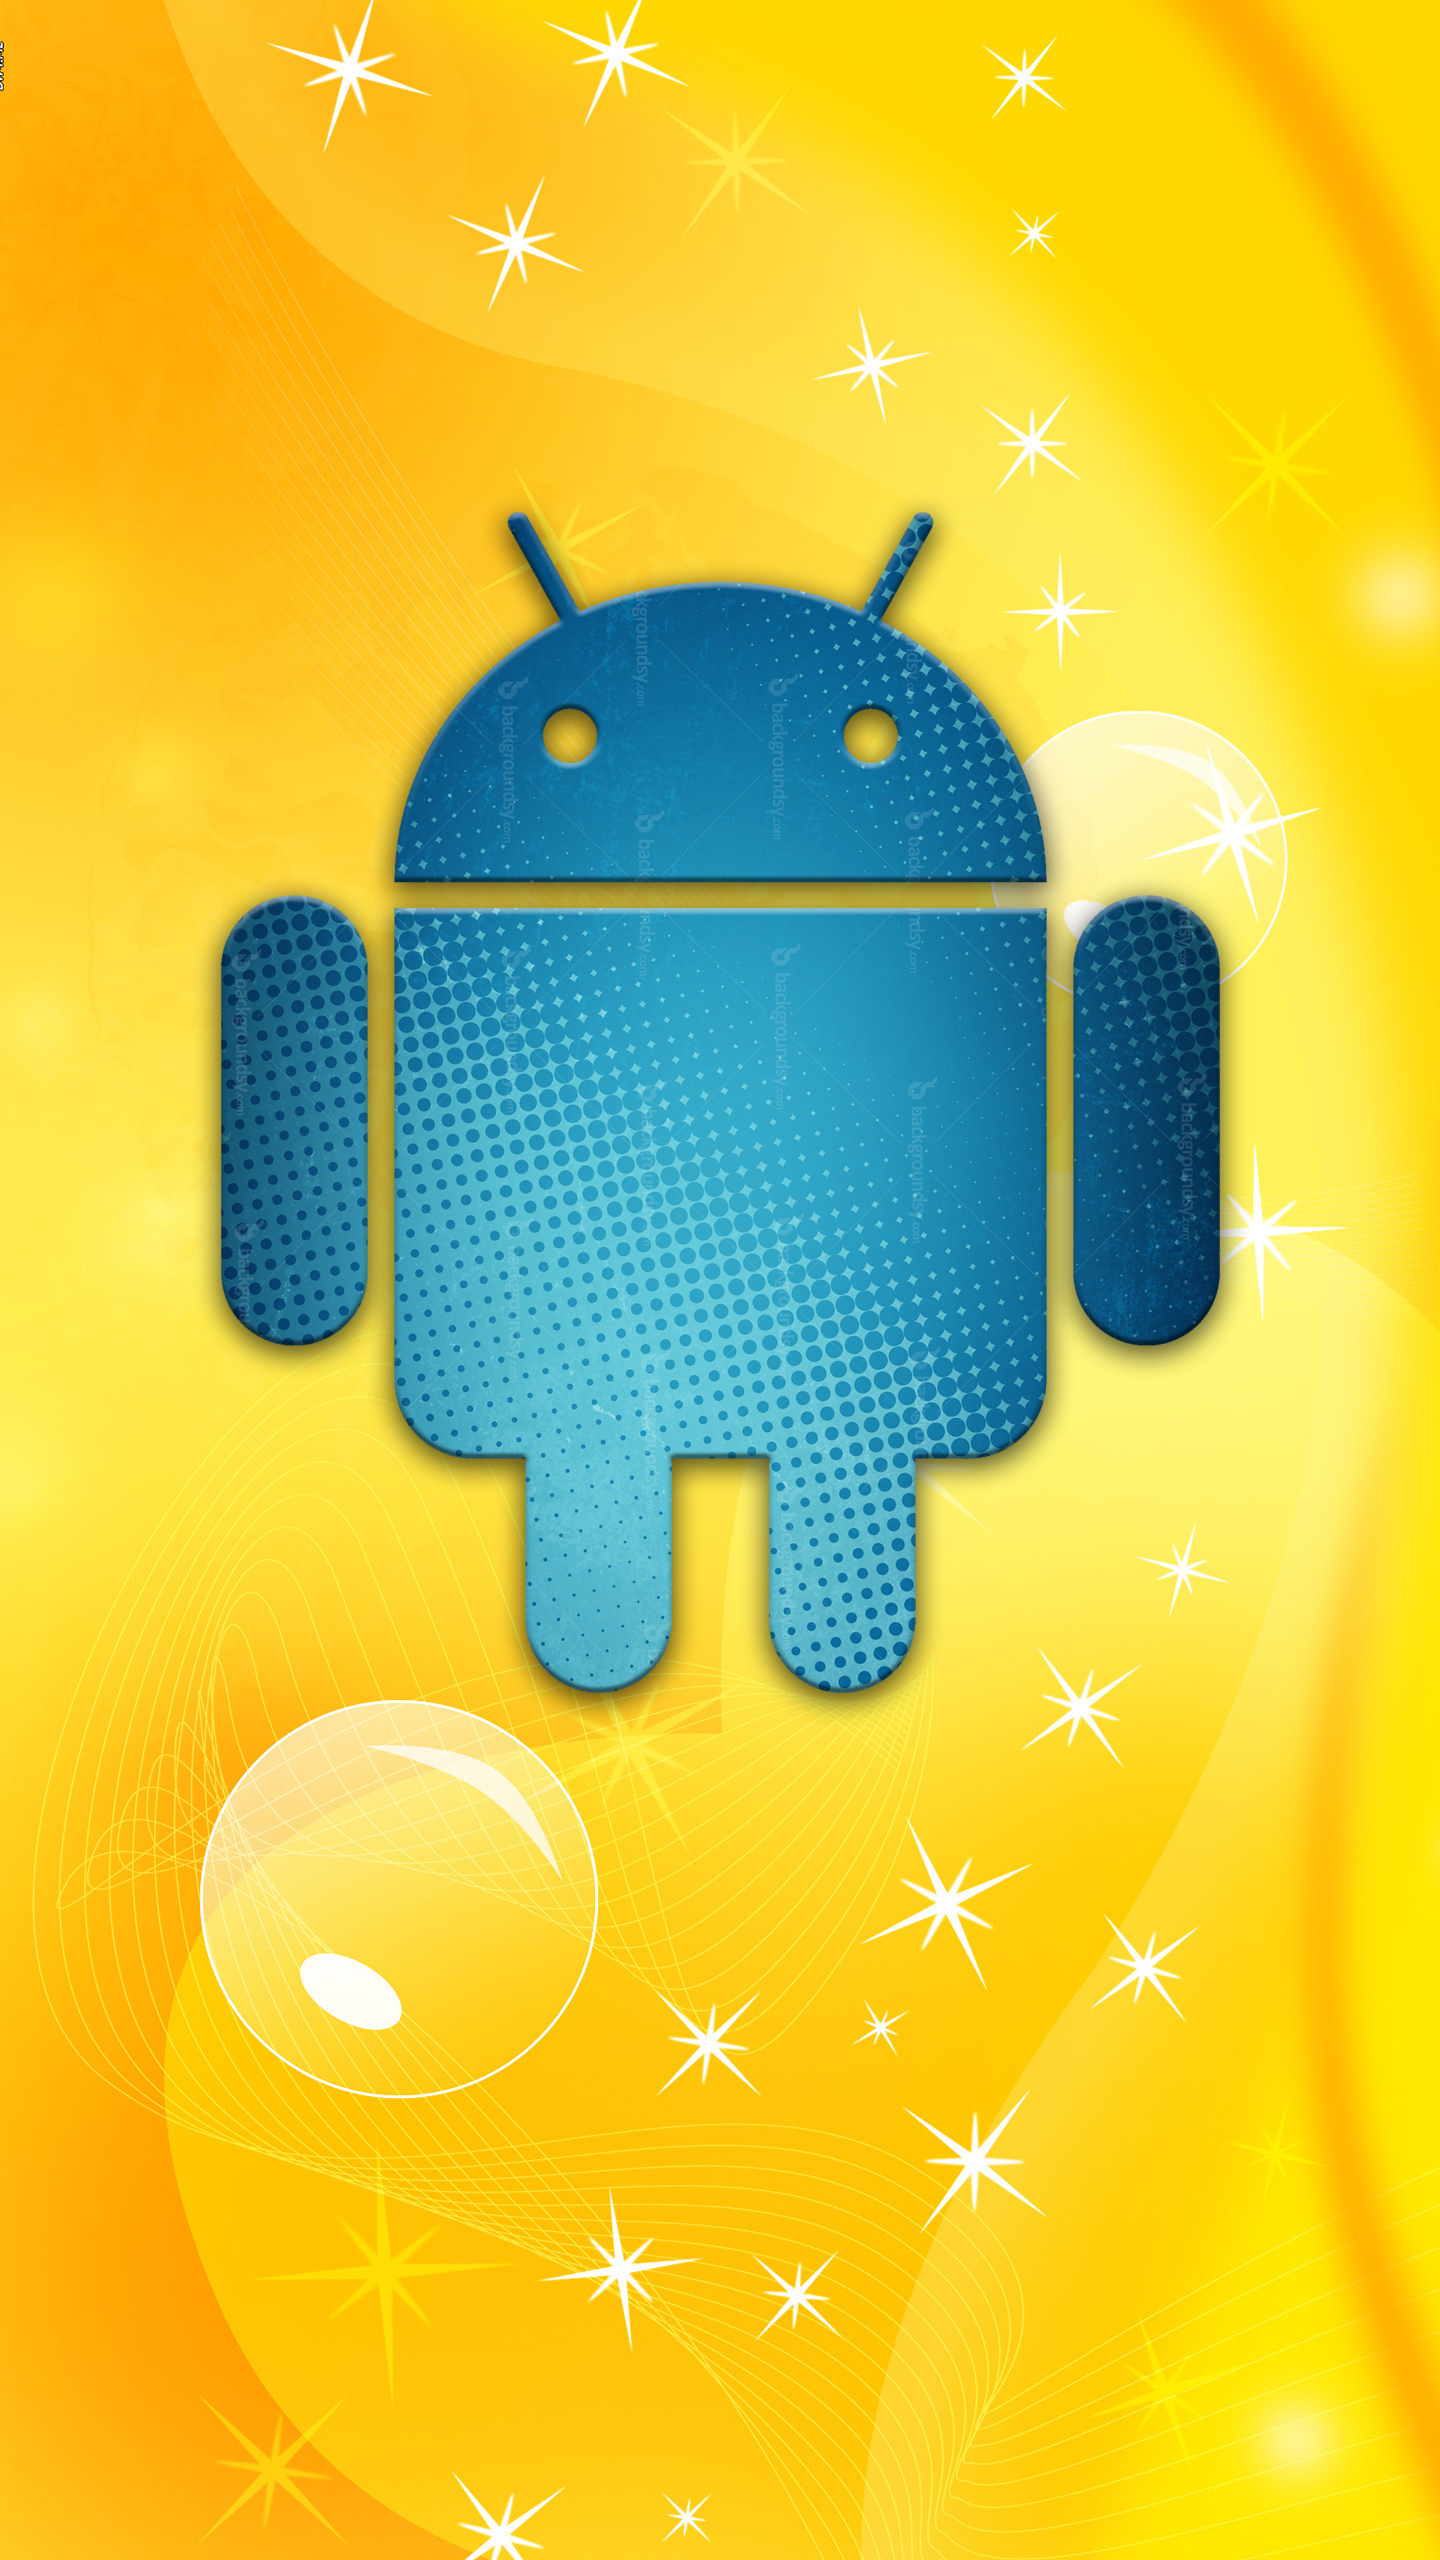 Samsung Galaxy S7 Wallpapers Blue Bugdroid Yellow Android Wallpapers